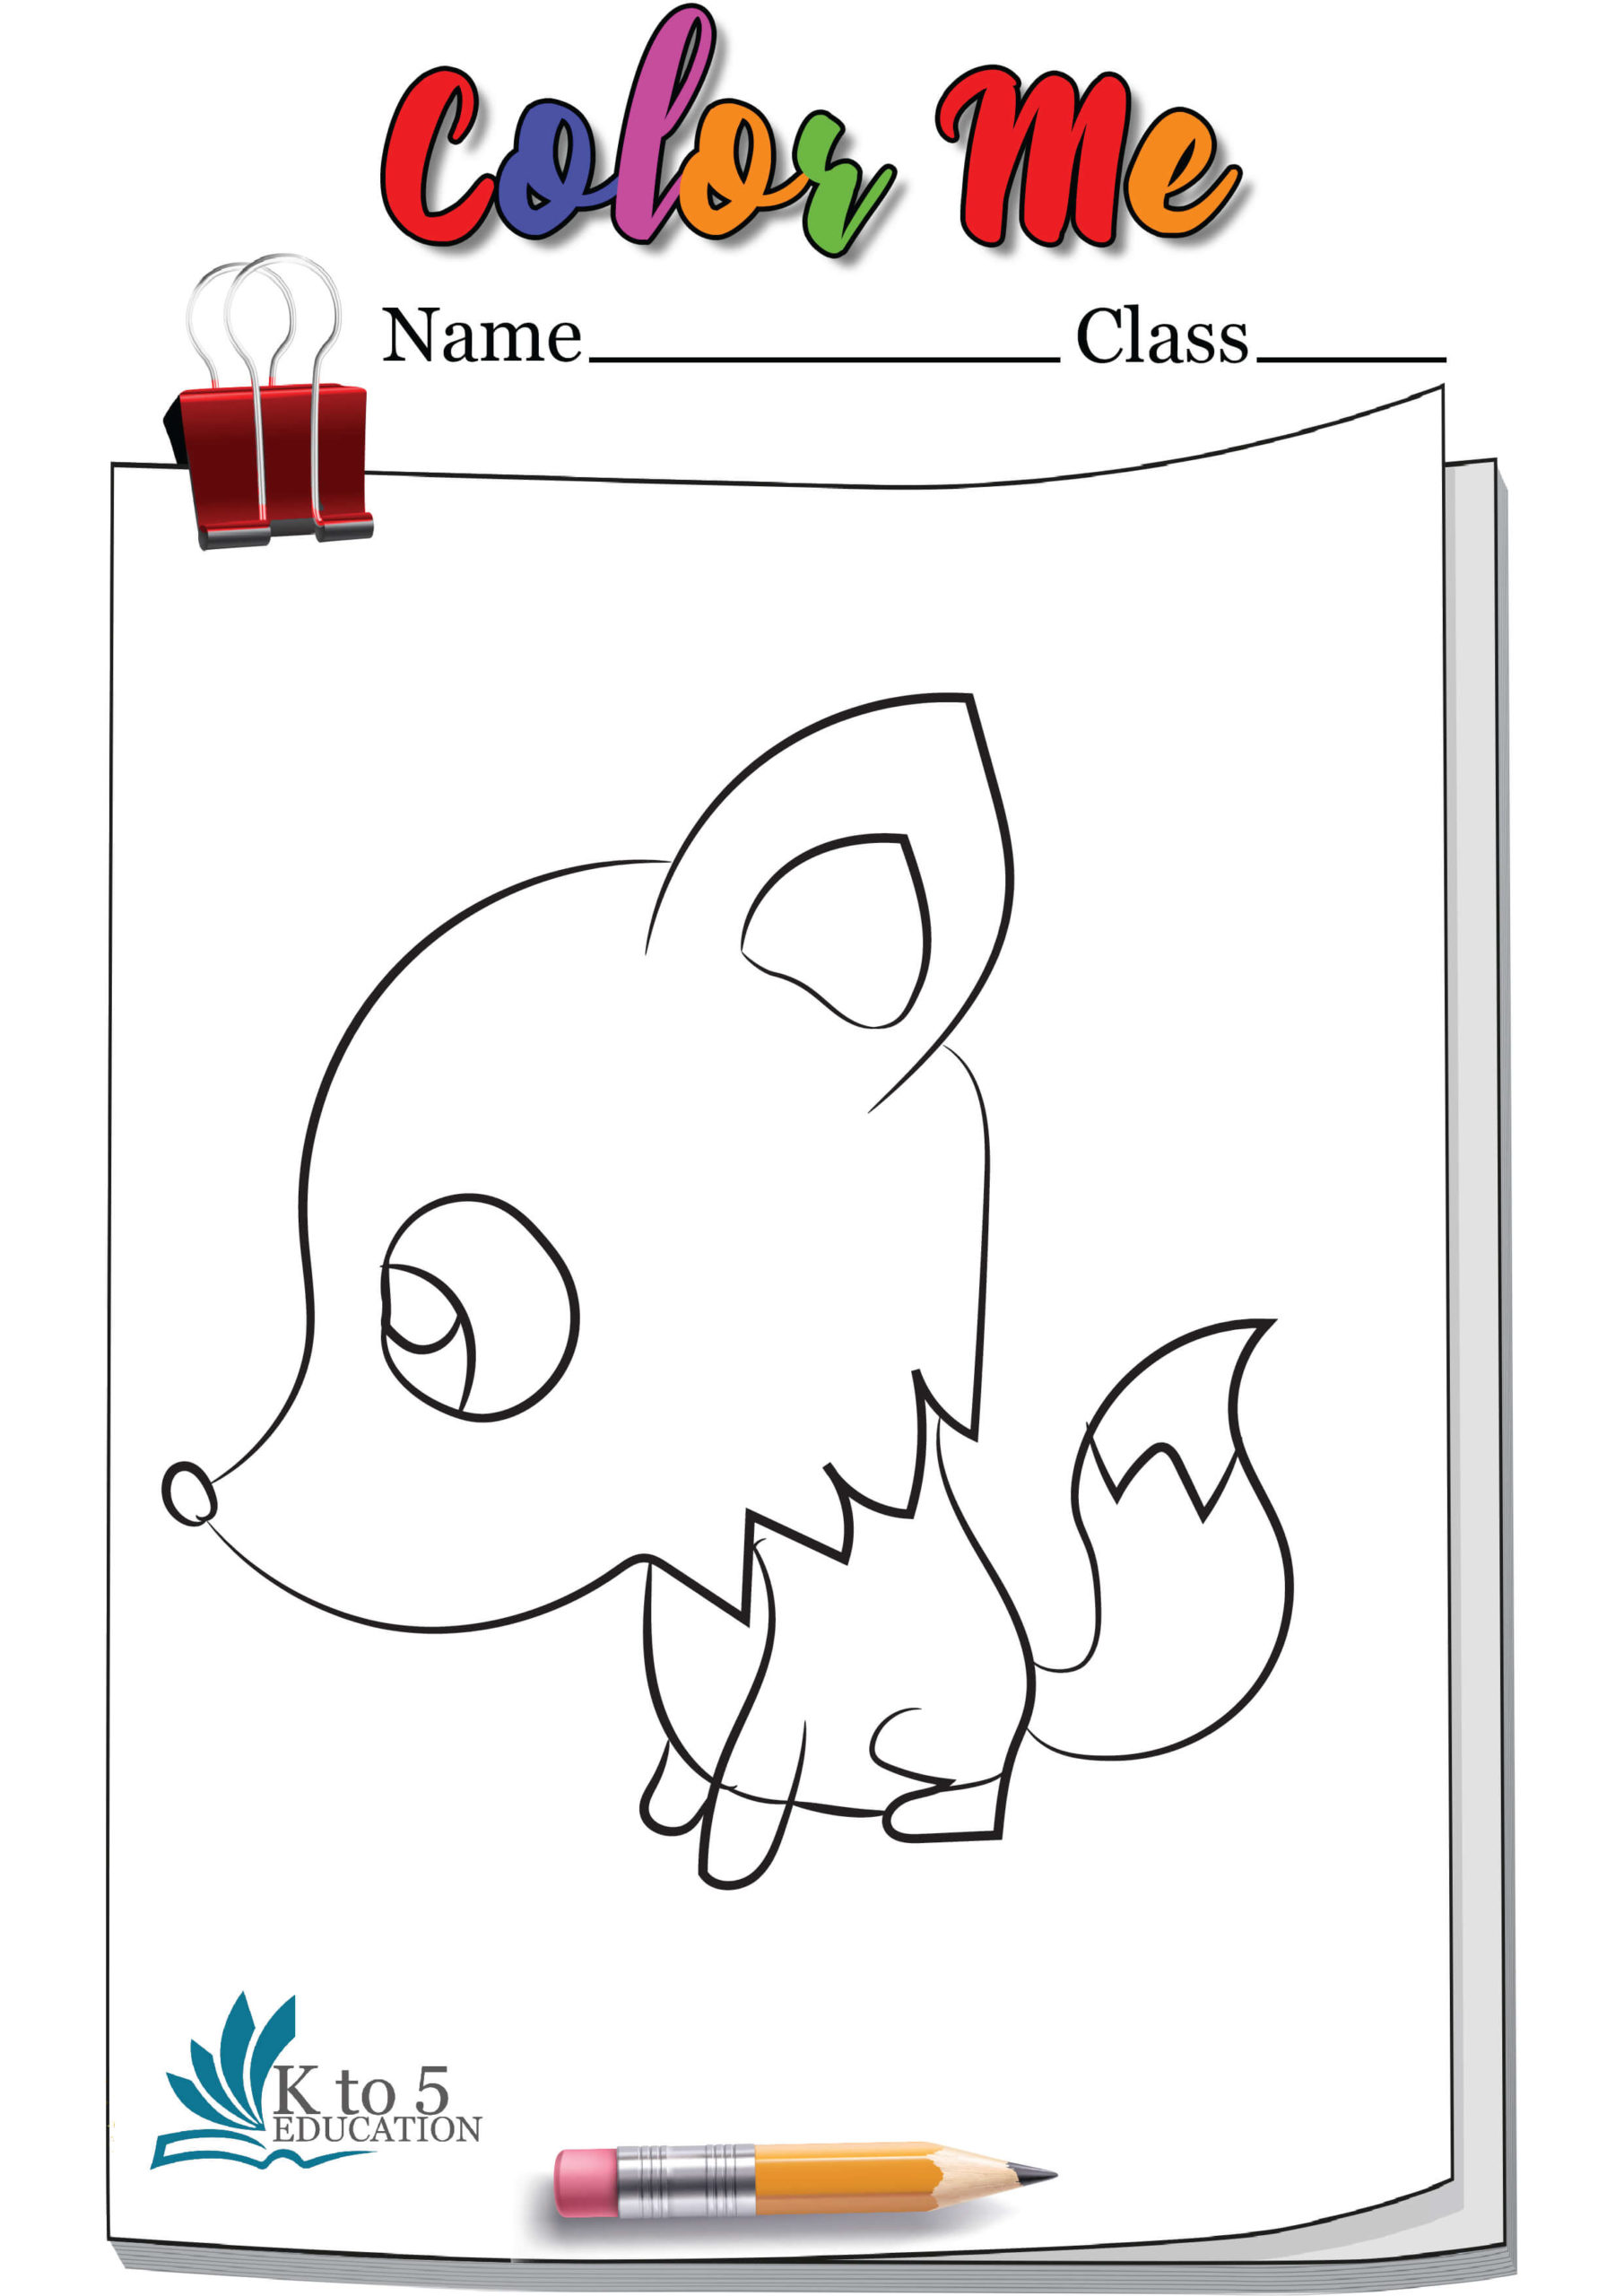 Sad Fox coloring page worksheet